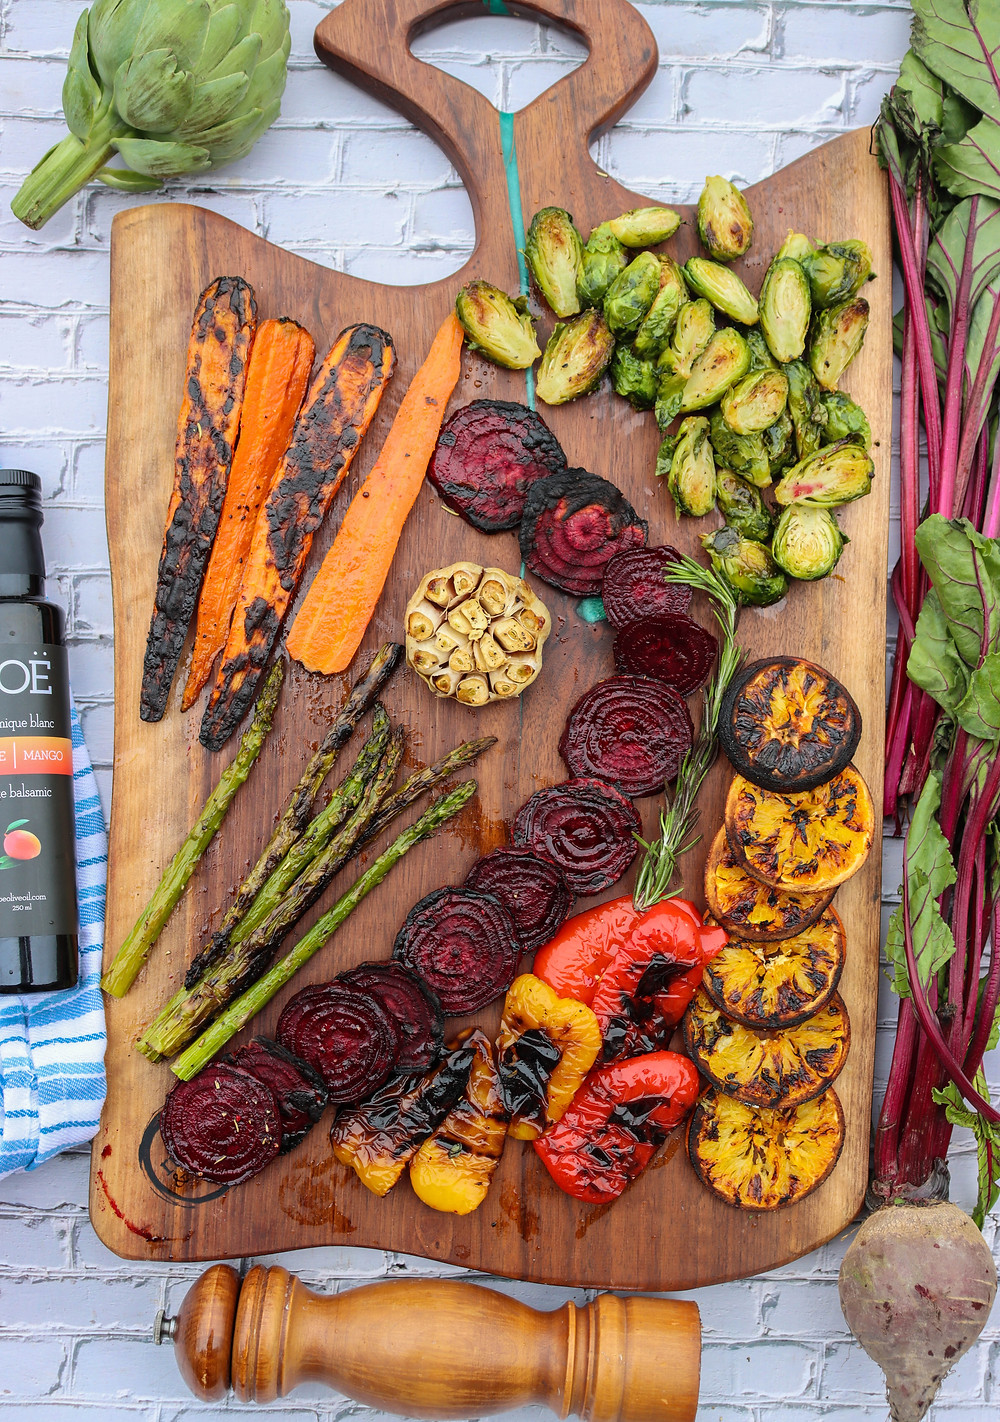 Smoked Veggies Recipe. Balsamic Fire Roasted Vegetables